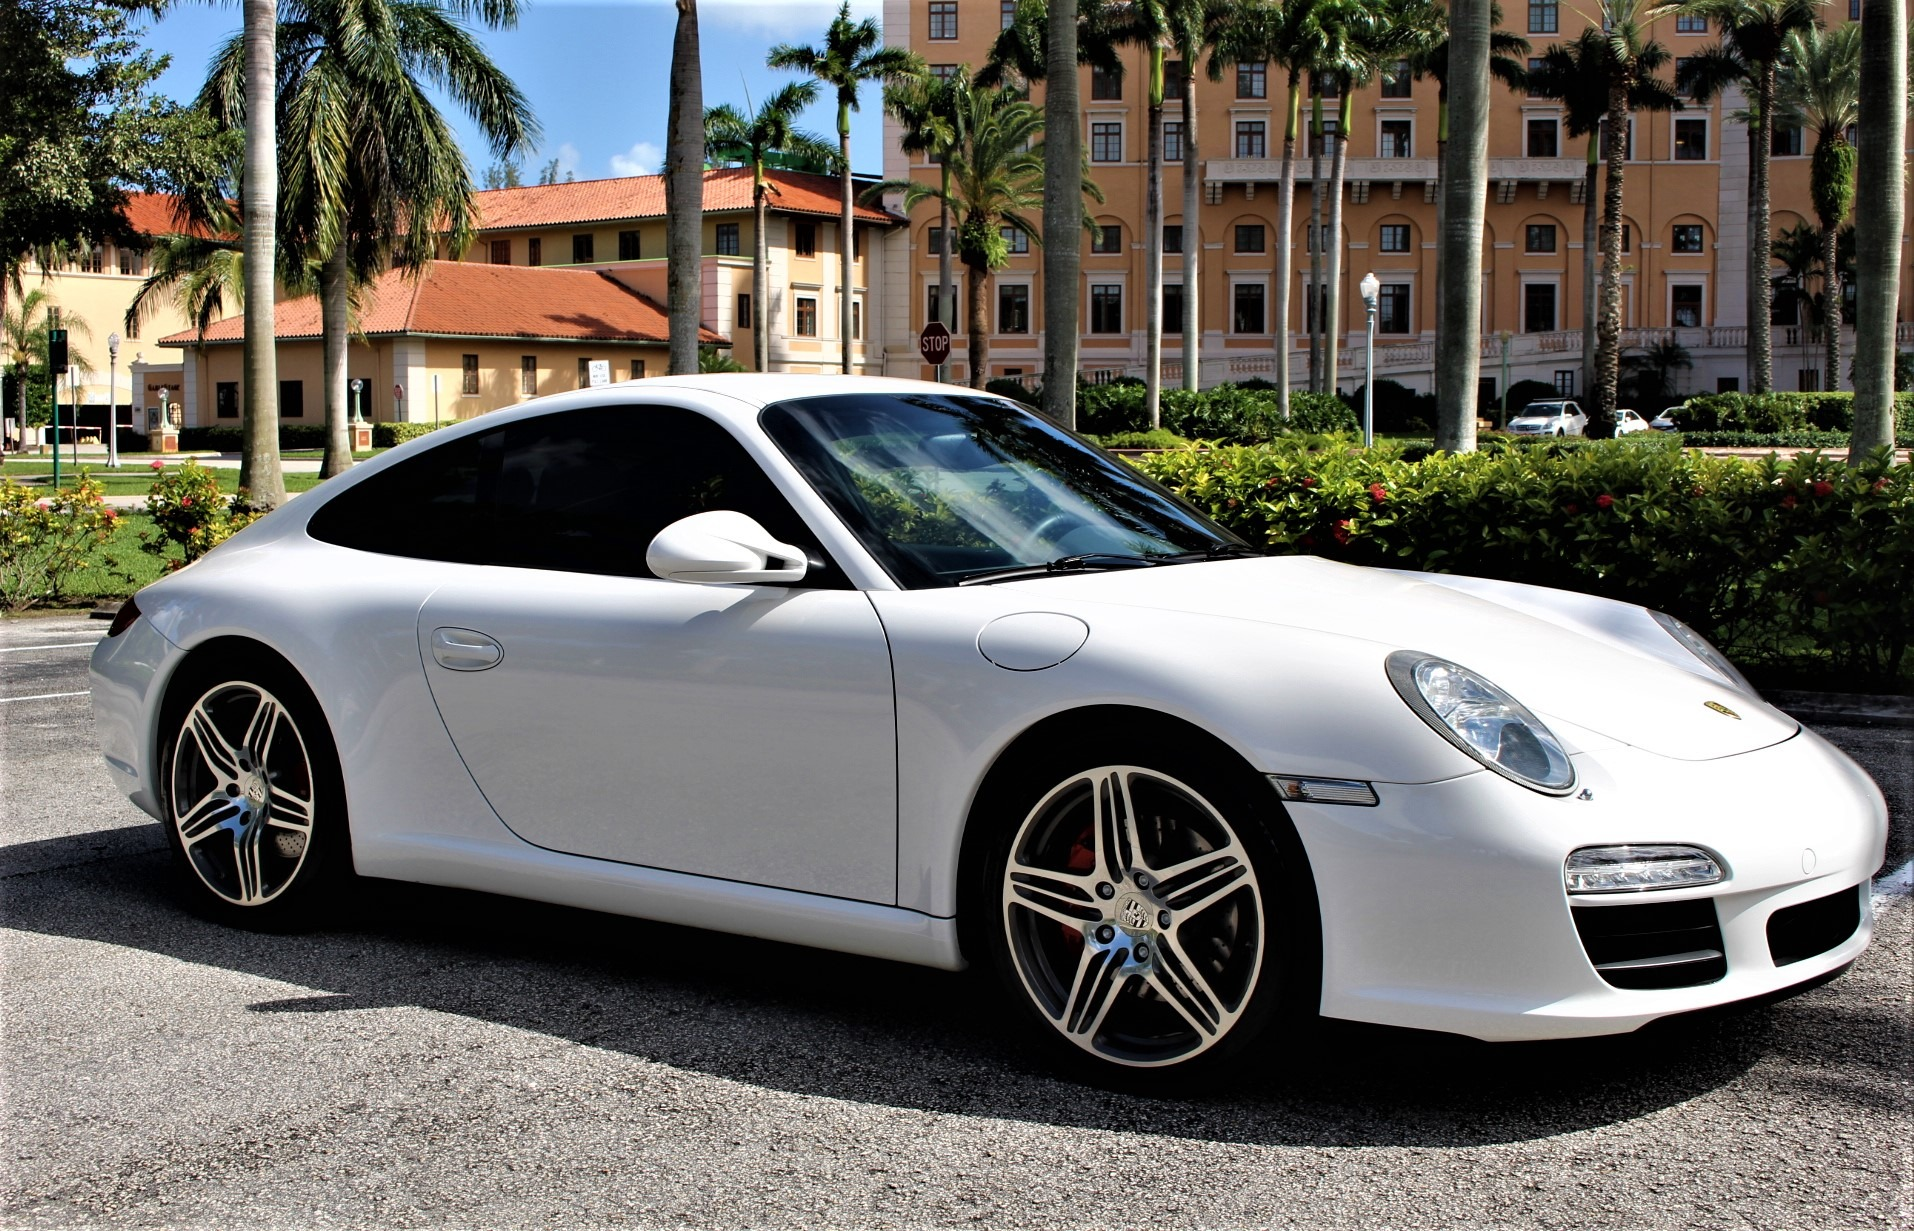 Used 2011 Porsche 911 Carrera S for sale Sold at The Gables Sports Cars in Miami FL 33146 2